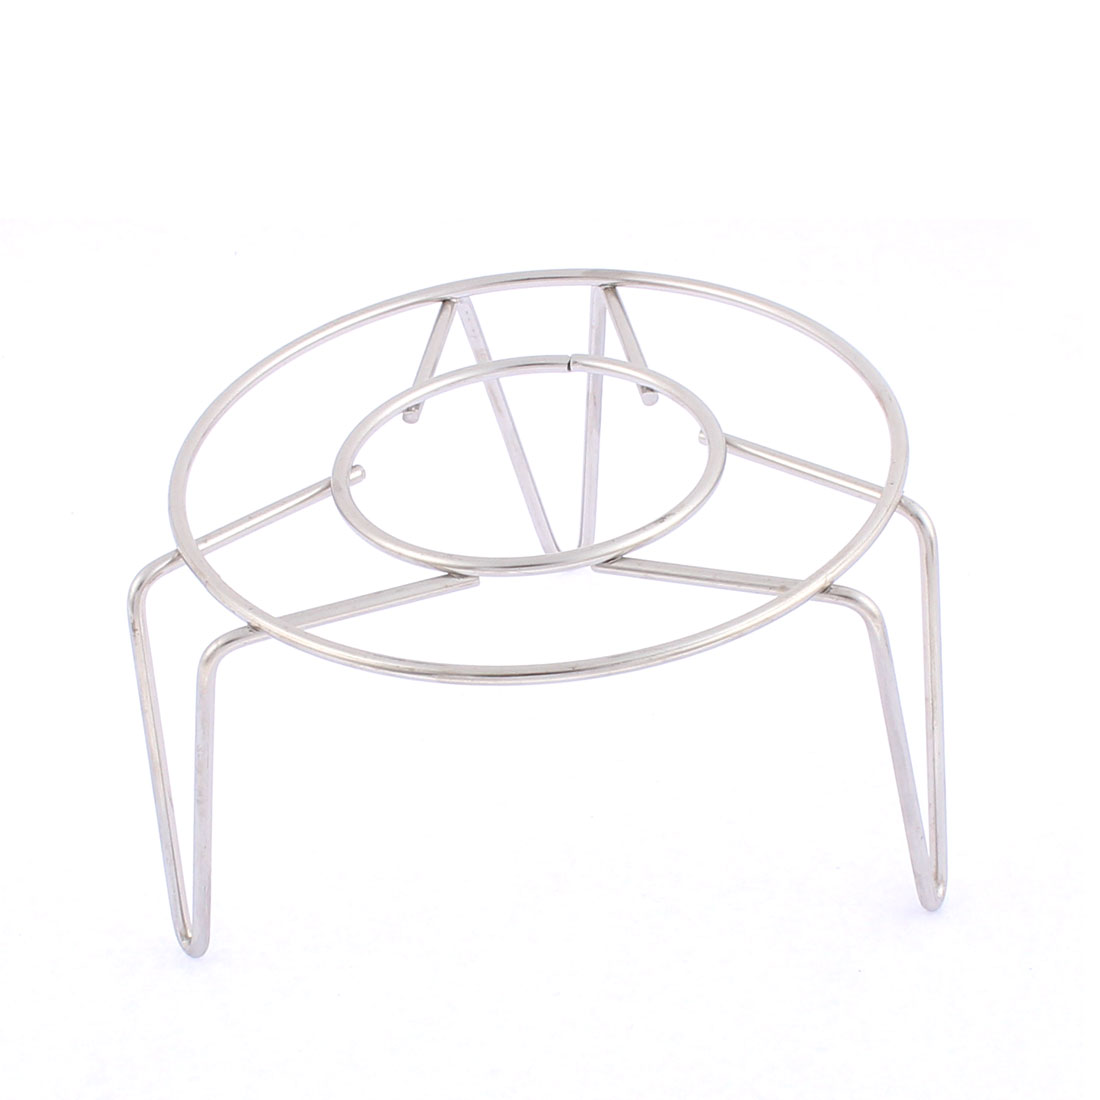 Cookware Round 3 Legs Steam Steamer Rack 10.5 x 6cm